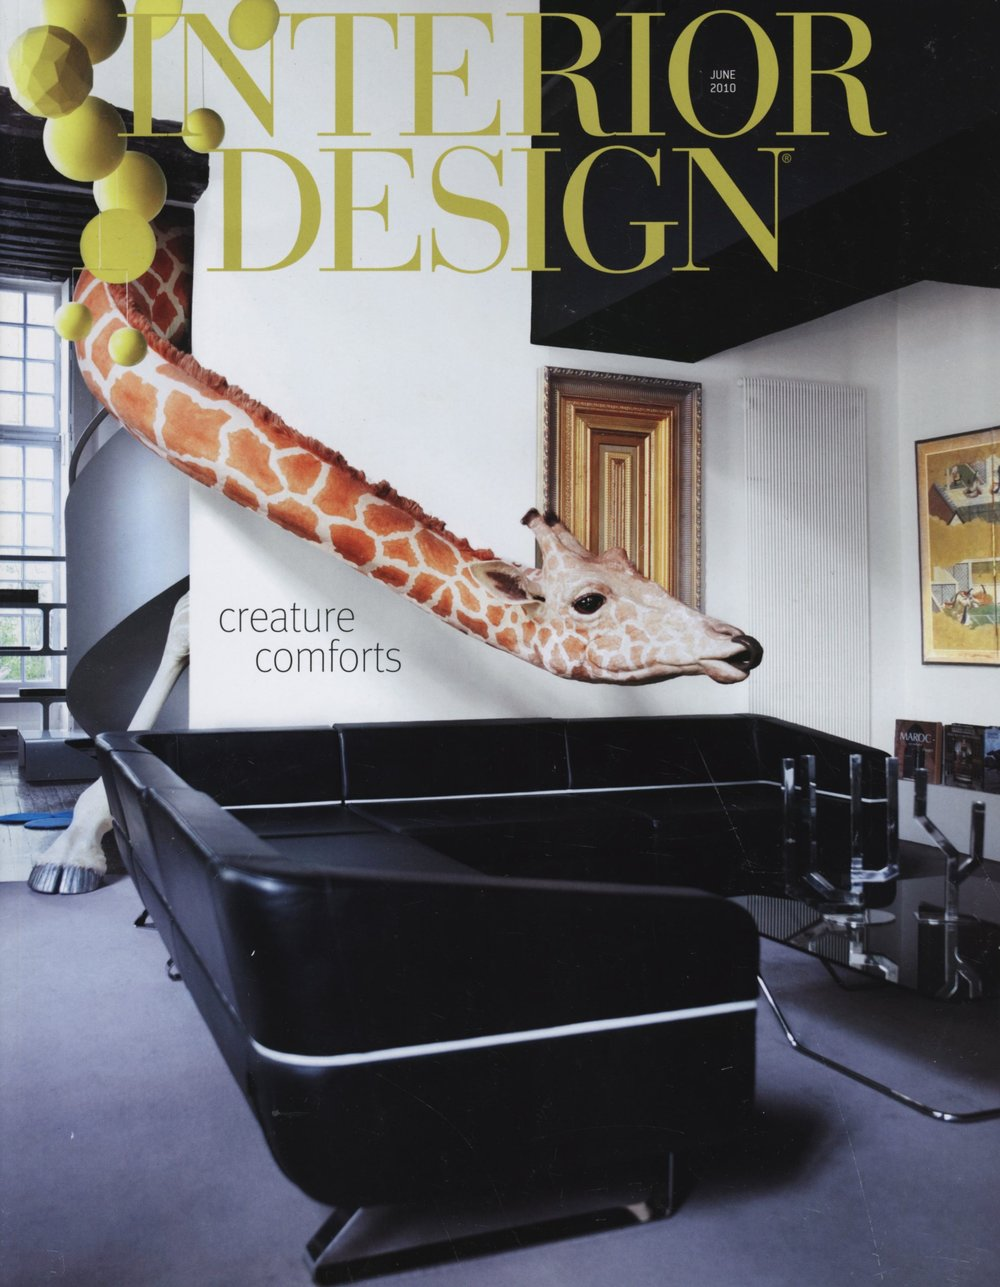 Matters of Design, Interior Design, 2010